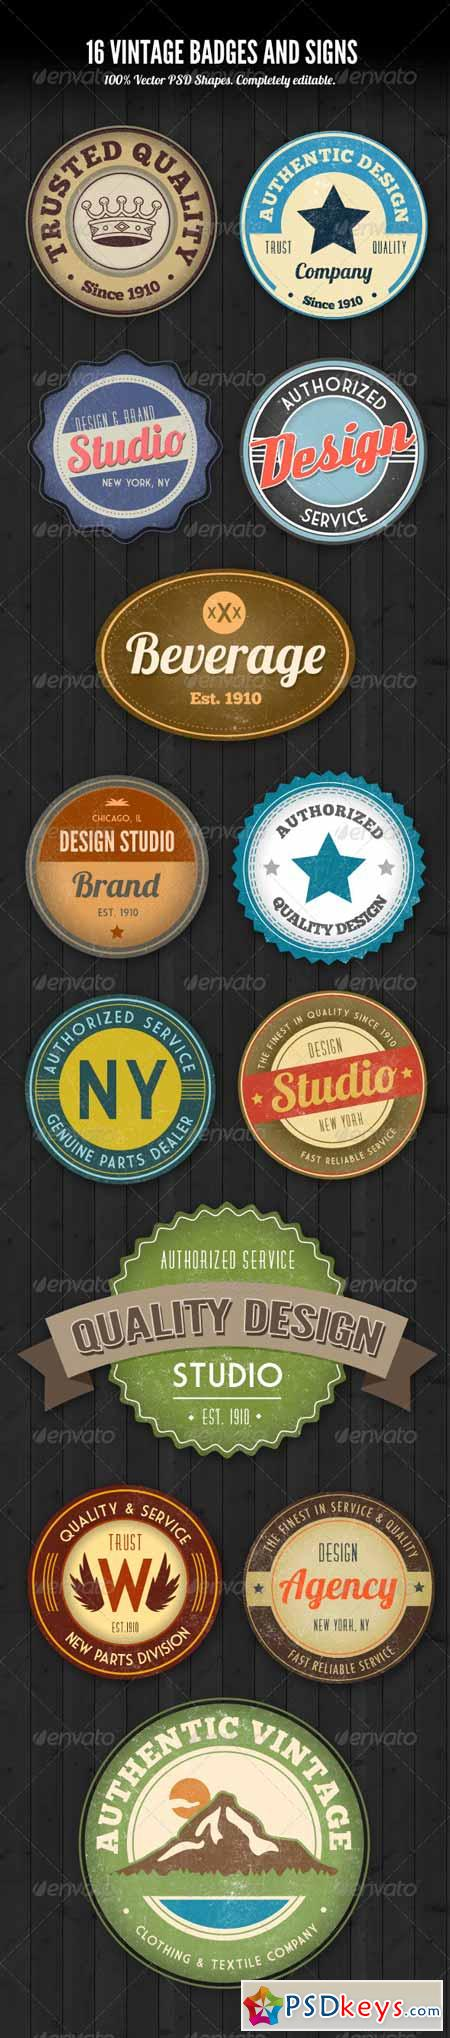 PSD Vintage Style Badges and Logos 2409331